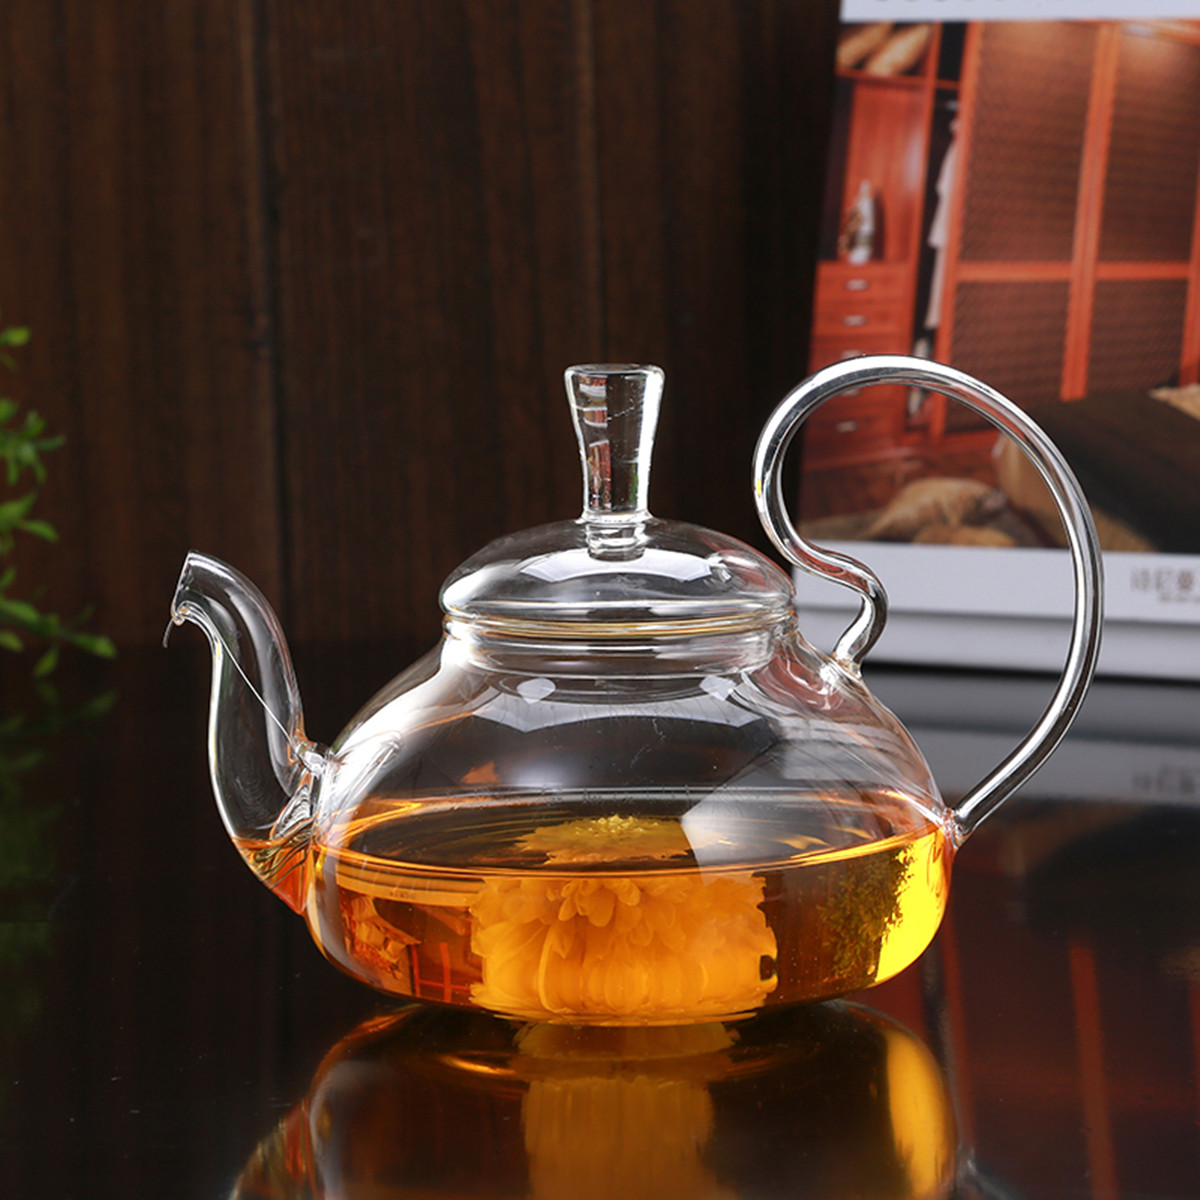 Heat Resistant Elegant Glass Teapot Infuser Flower/Green Tea Pot 750ml Size Coffee Pot Bar Accessory